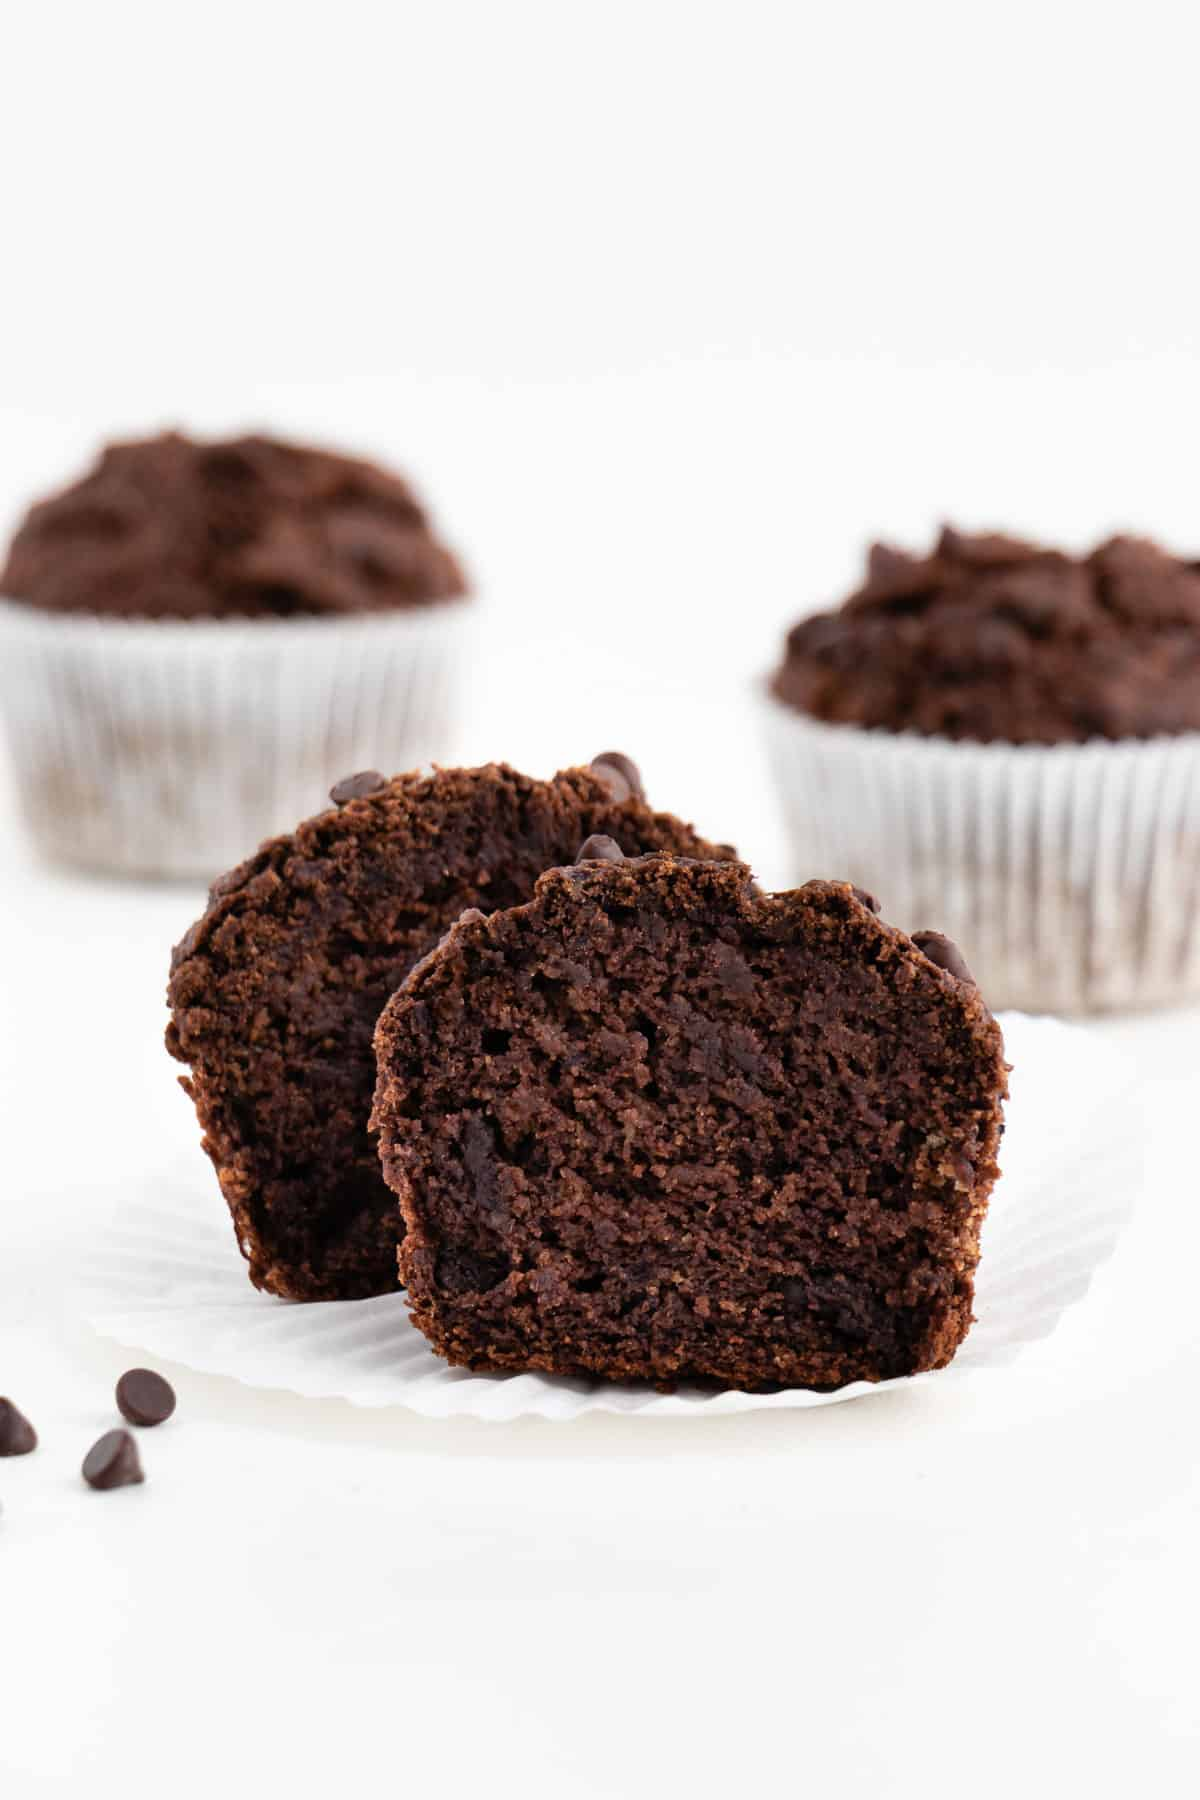 a sliced double chocolate banana muffin in front of two whole muffins